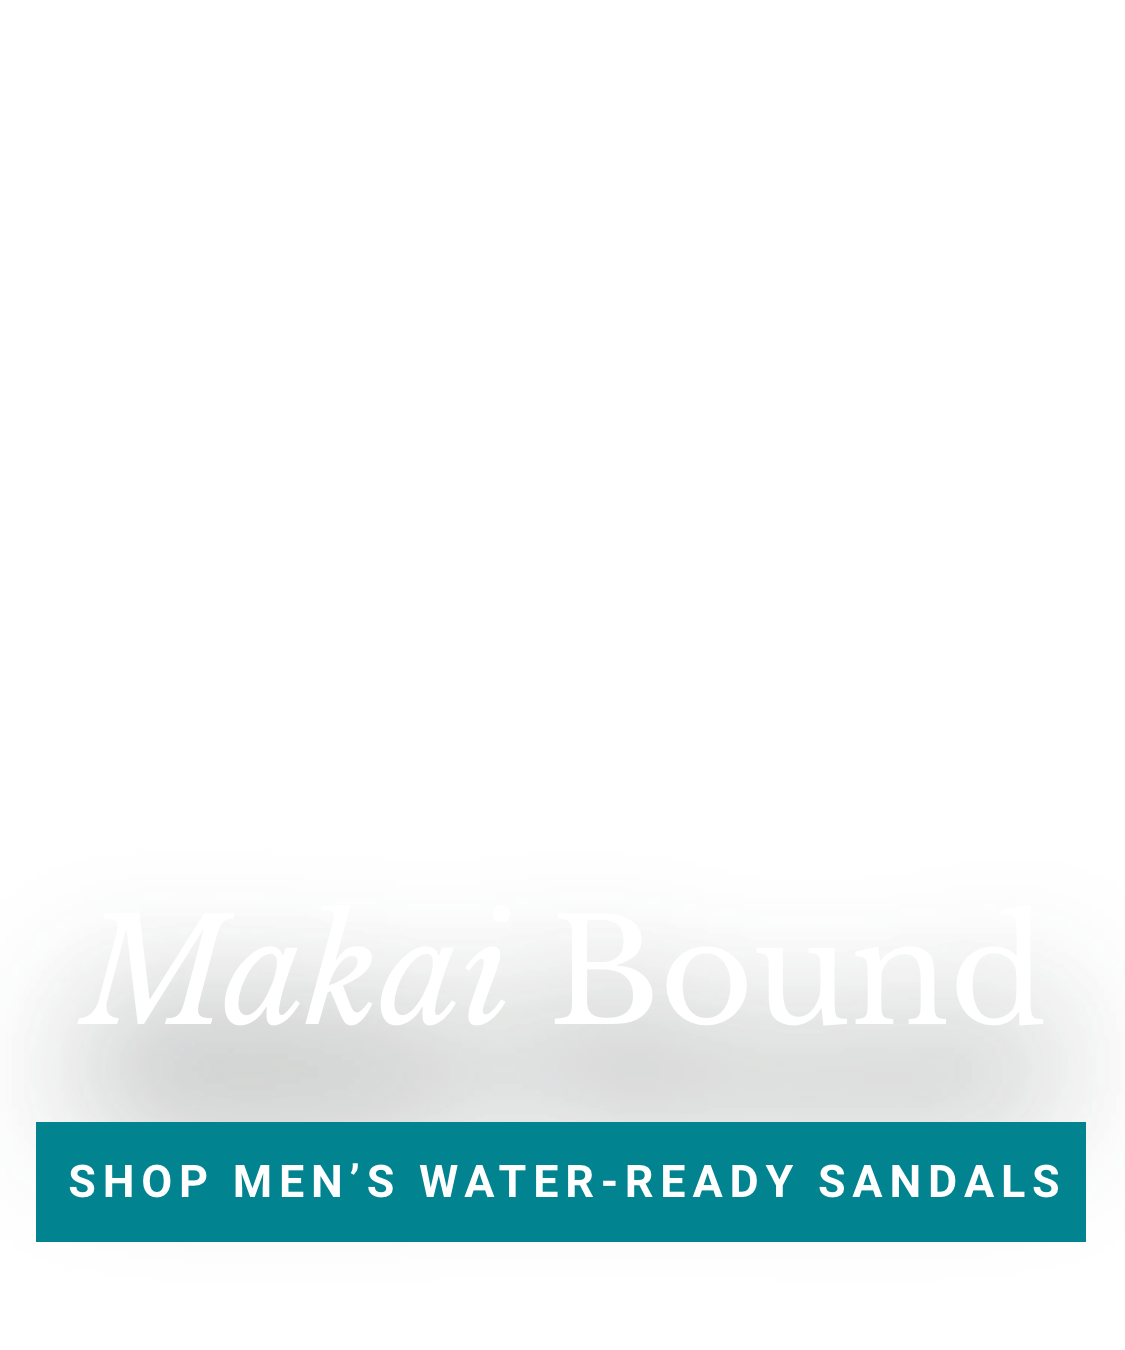 243dd3f4422ced OluKai Hawaiian-Inspired Sandals, Shoes, and Boots